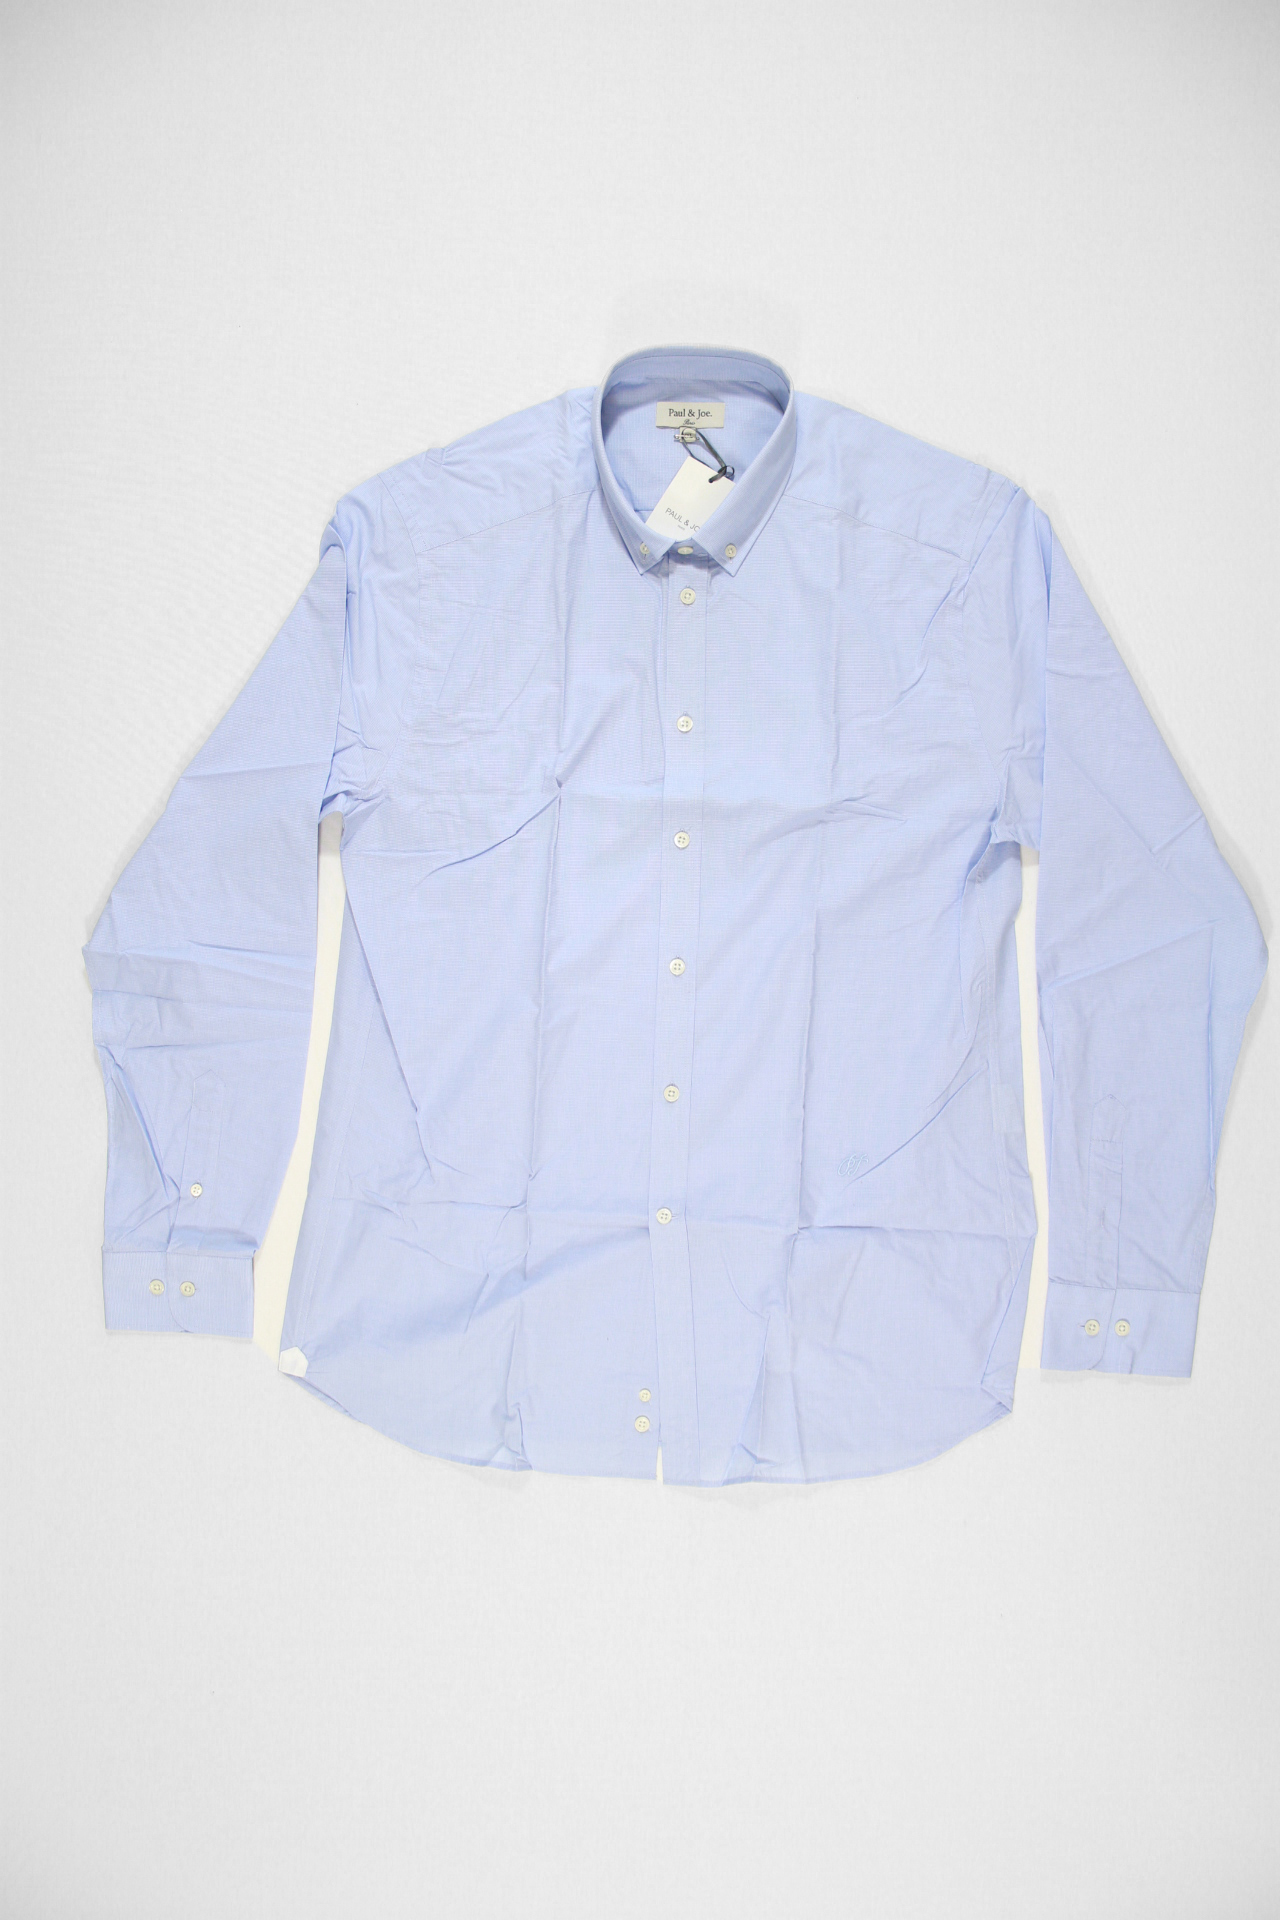 Paul & Joe Rob Shirt Blauw